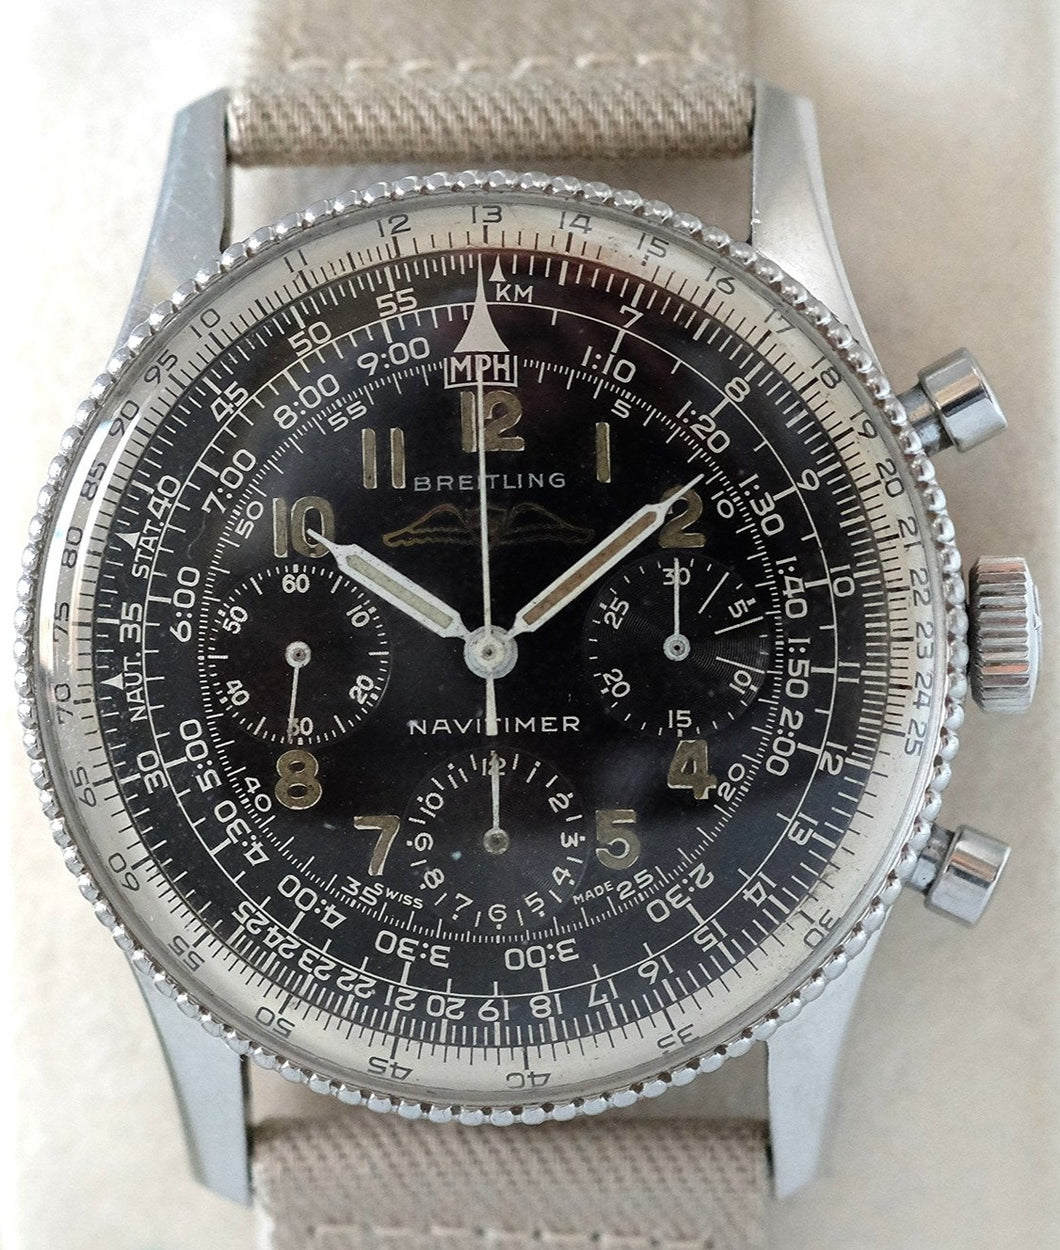 Breitling Navitimer Beaded Ref 806 with AOPA Logo